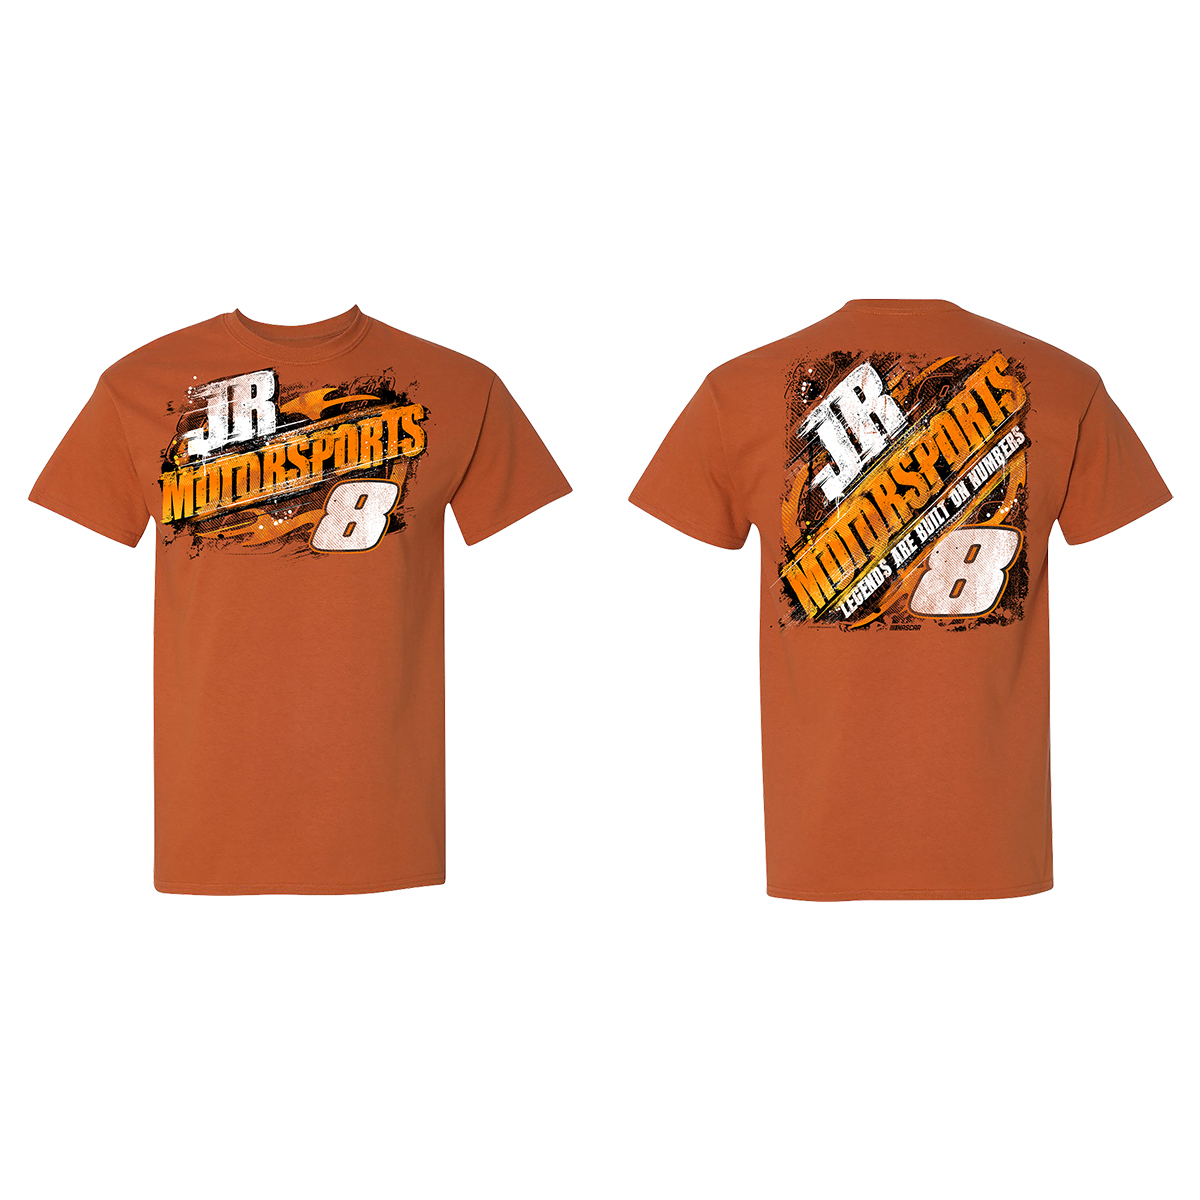 2019 NASCAR Jr. Motorsports Legends Built on #'s Orange T-shirt